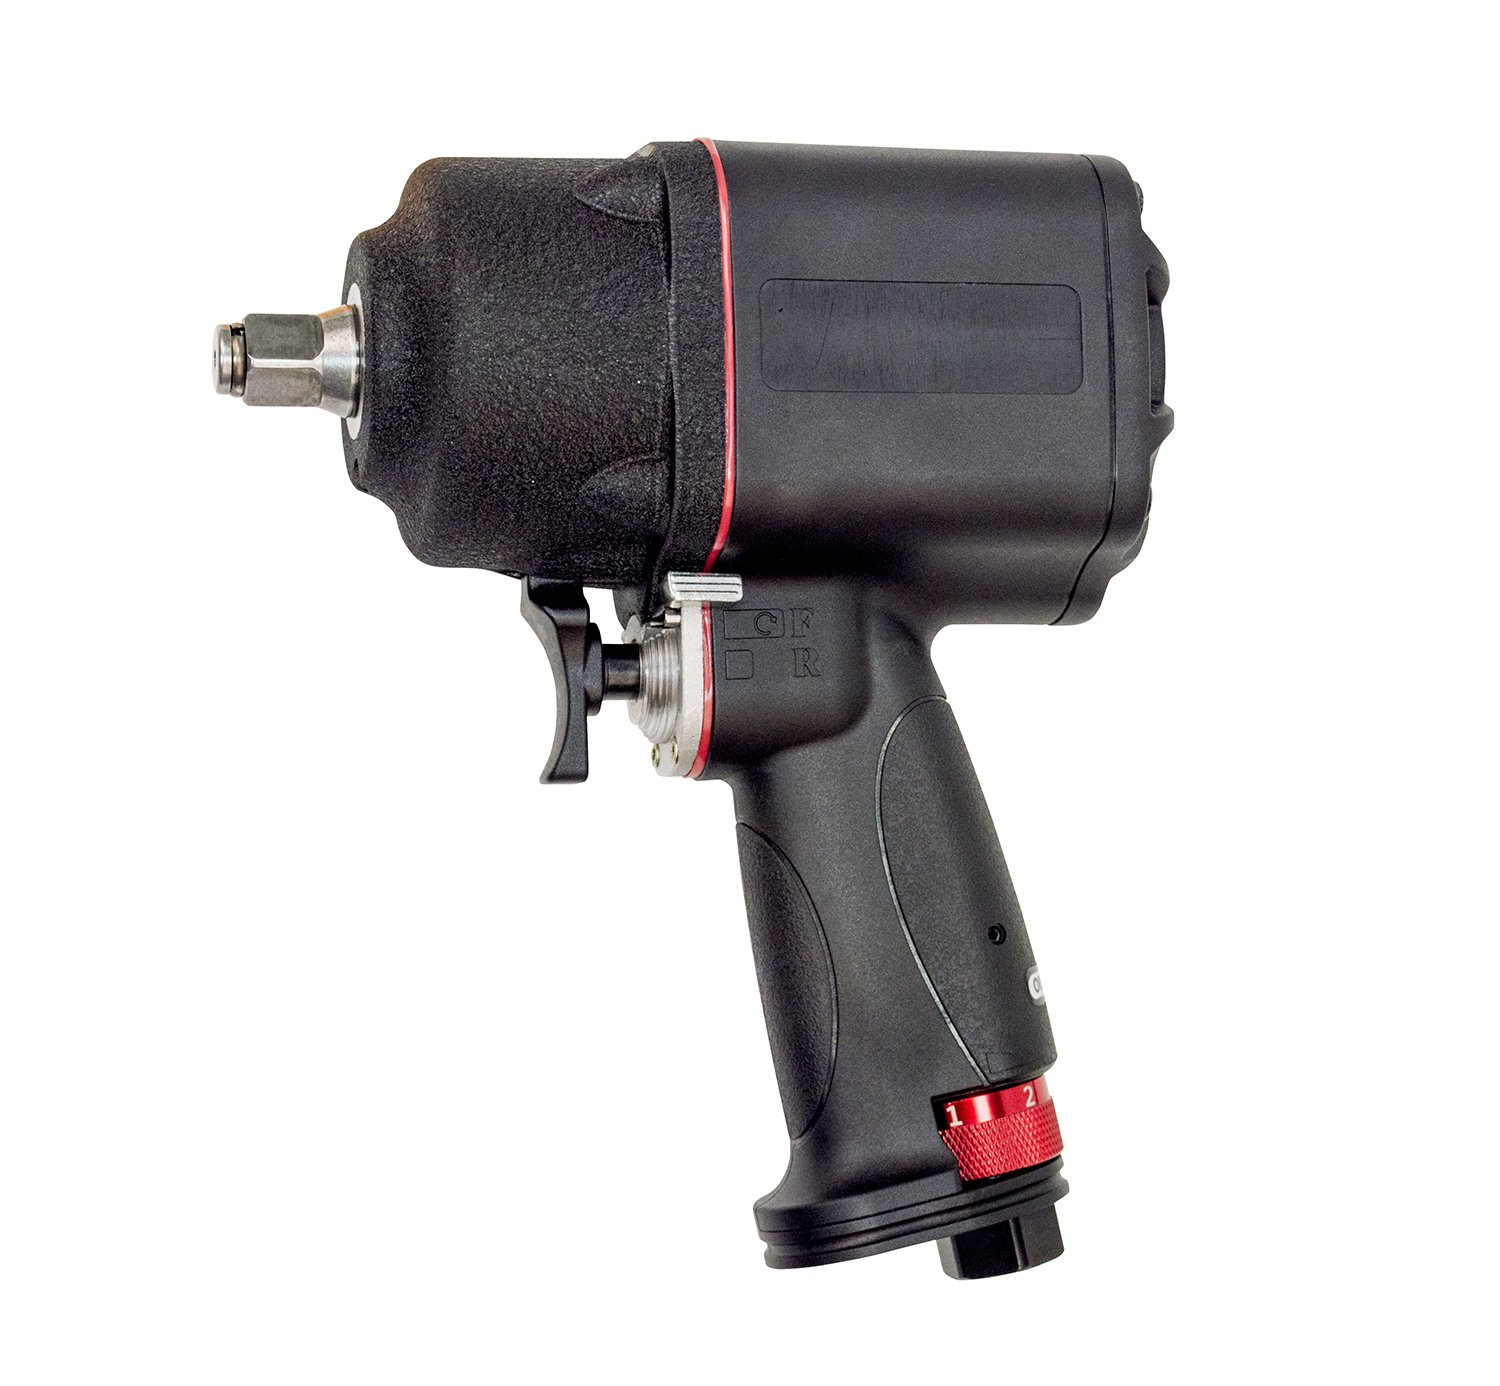 OEMTOOLS 24400 1/2'' Drive Composite Impact Wrench